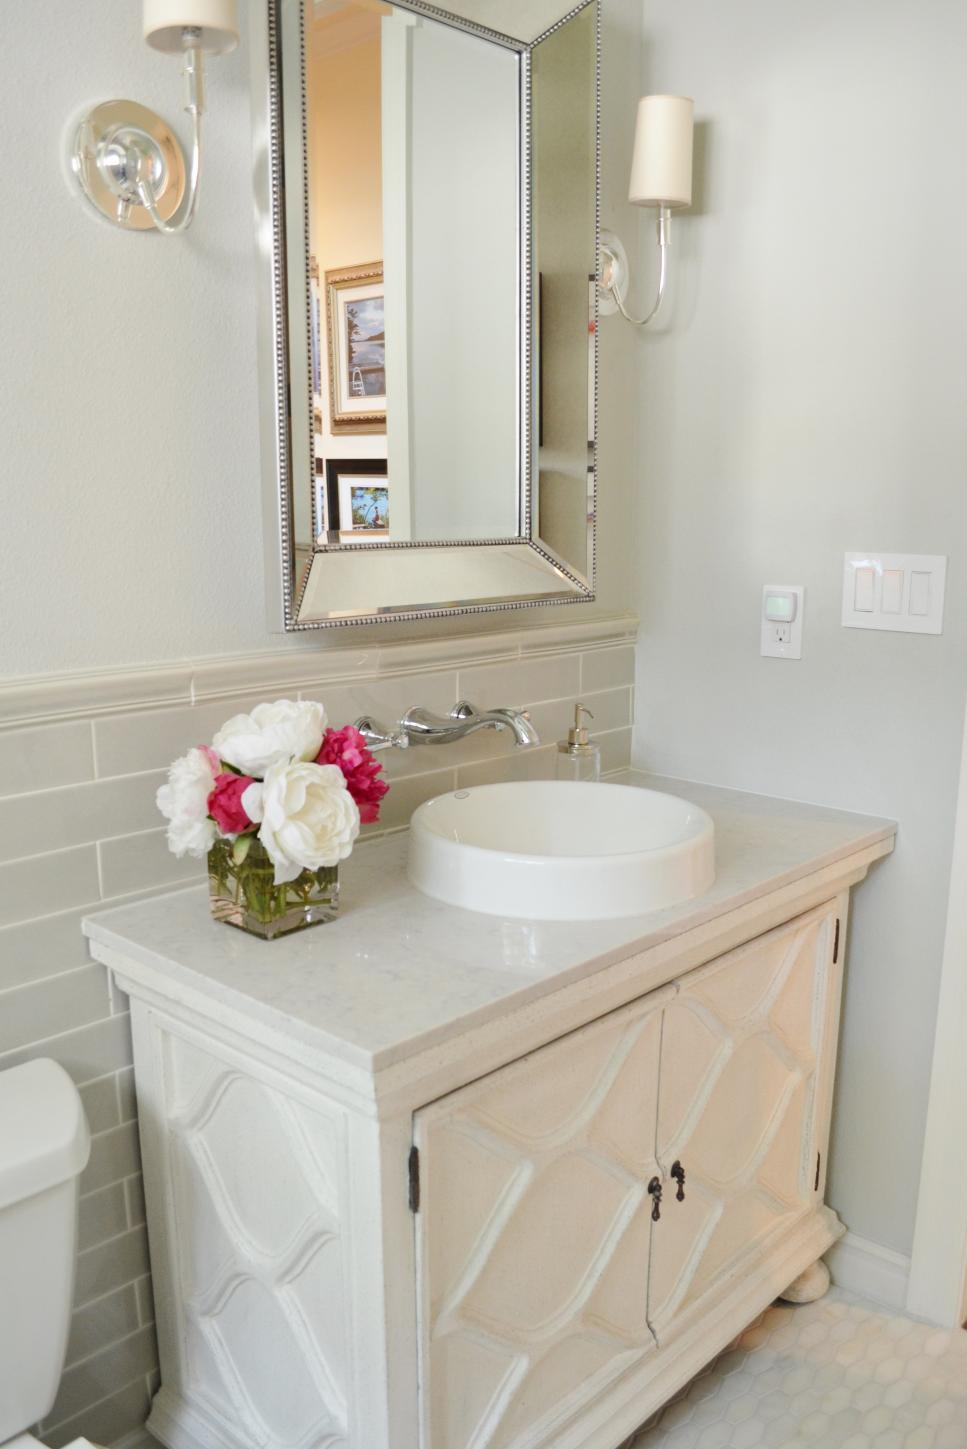 Bathroom Remodels On A Budget before-and-after bathroom remodels on a budget | hgtv